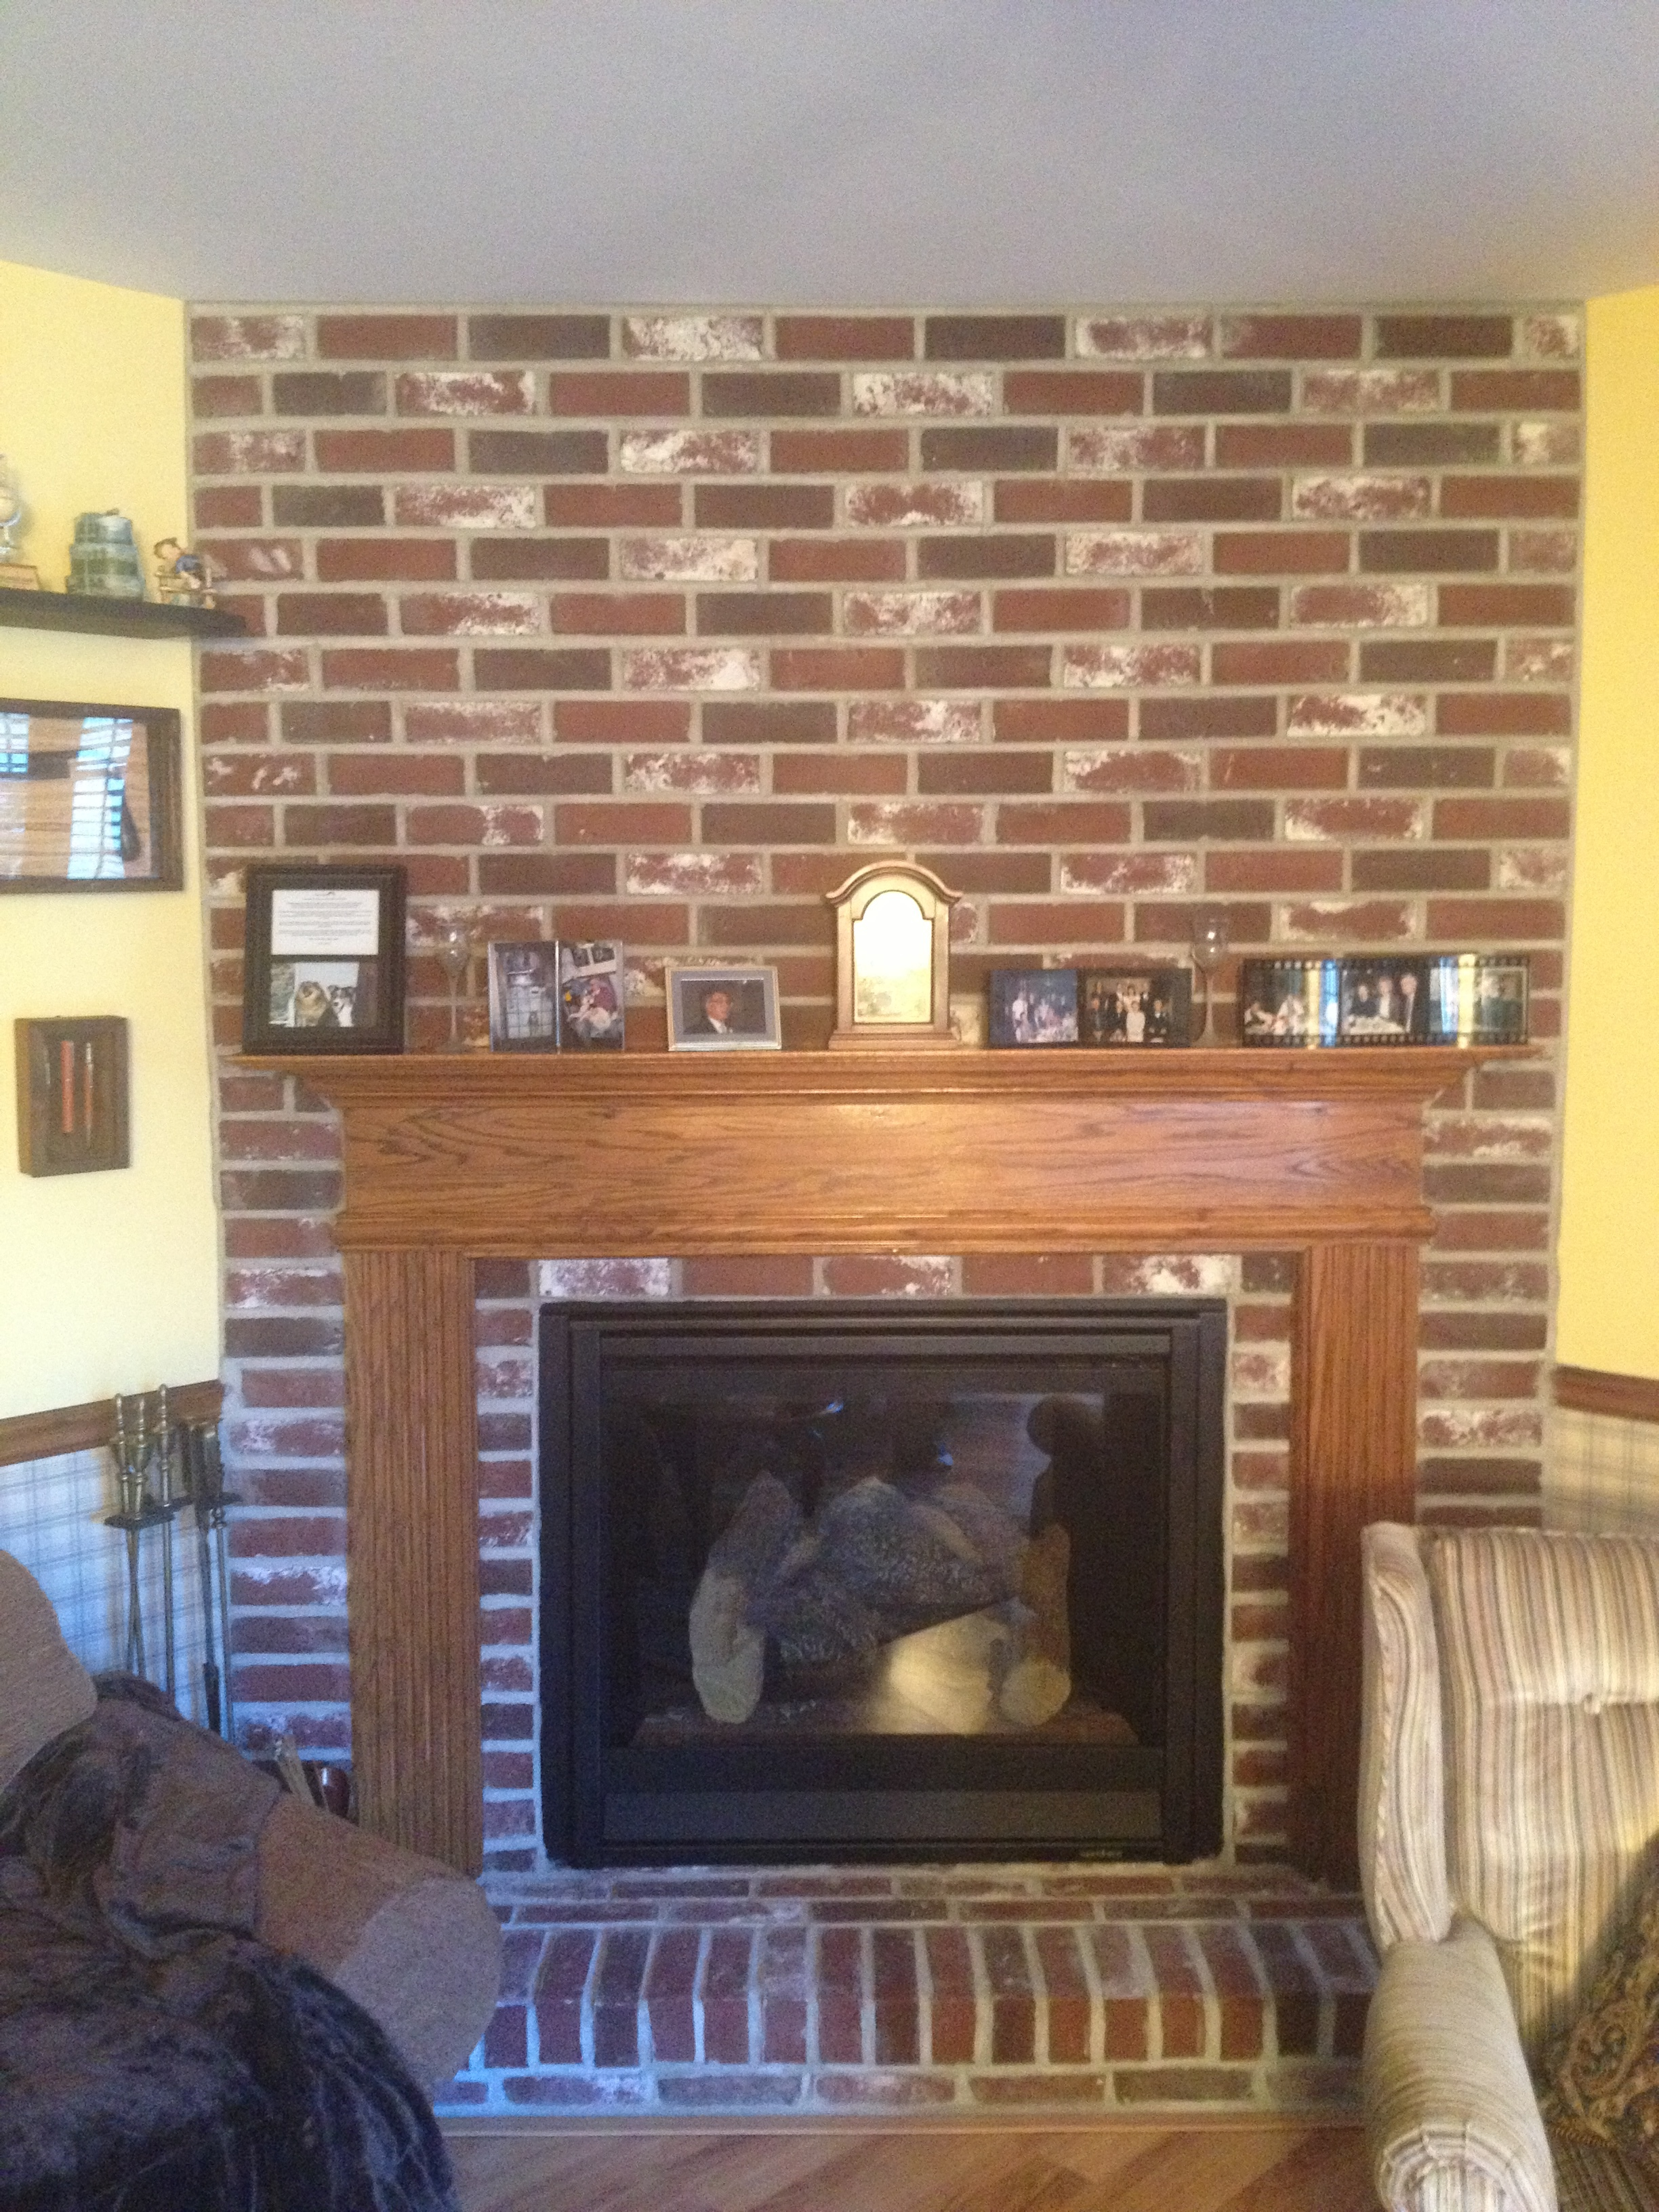 6000C w/ Brick Work and Mantel